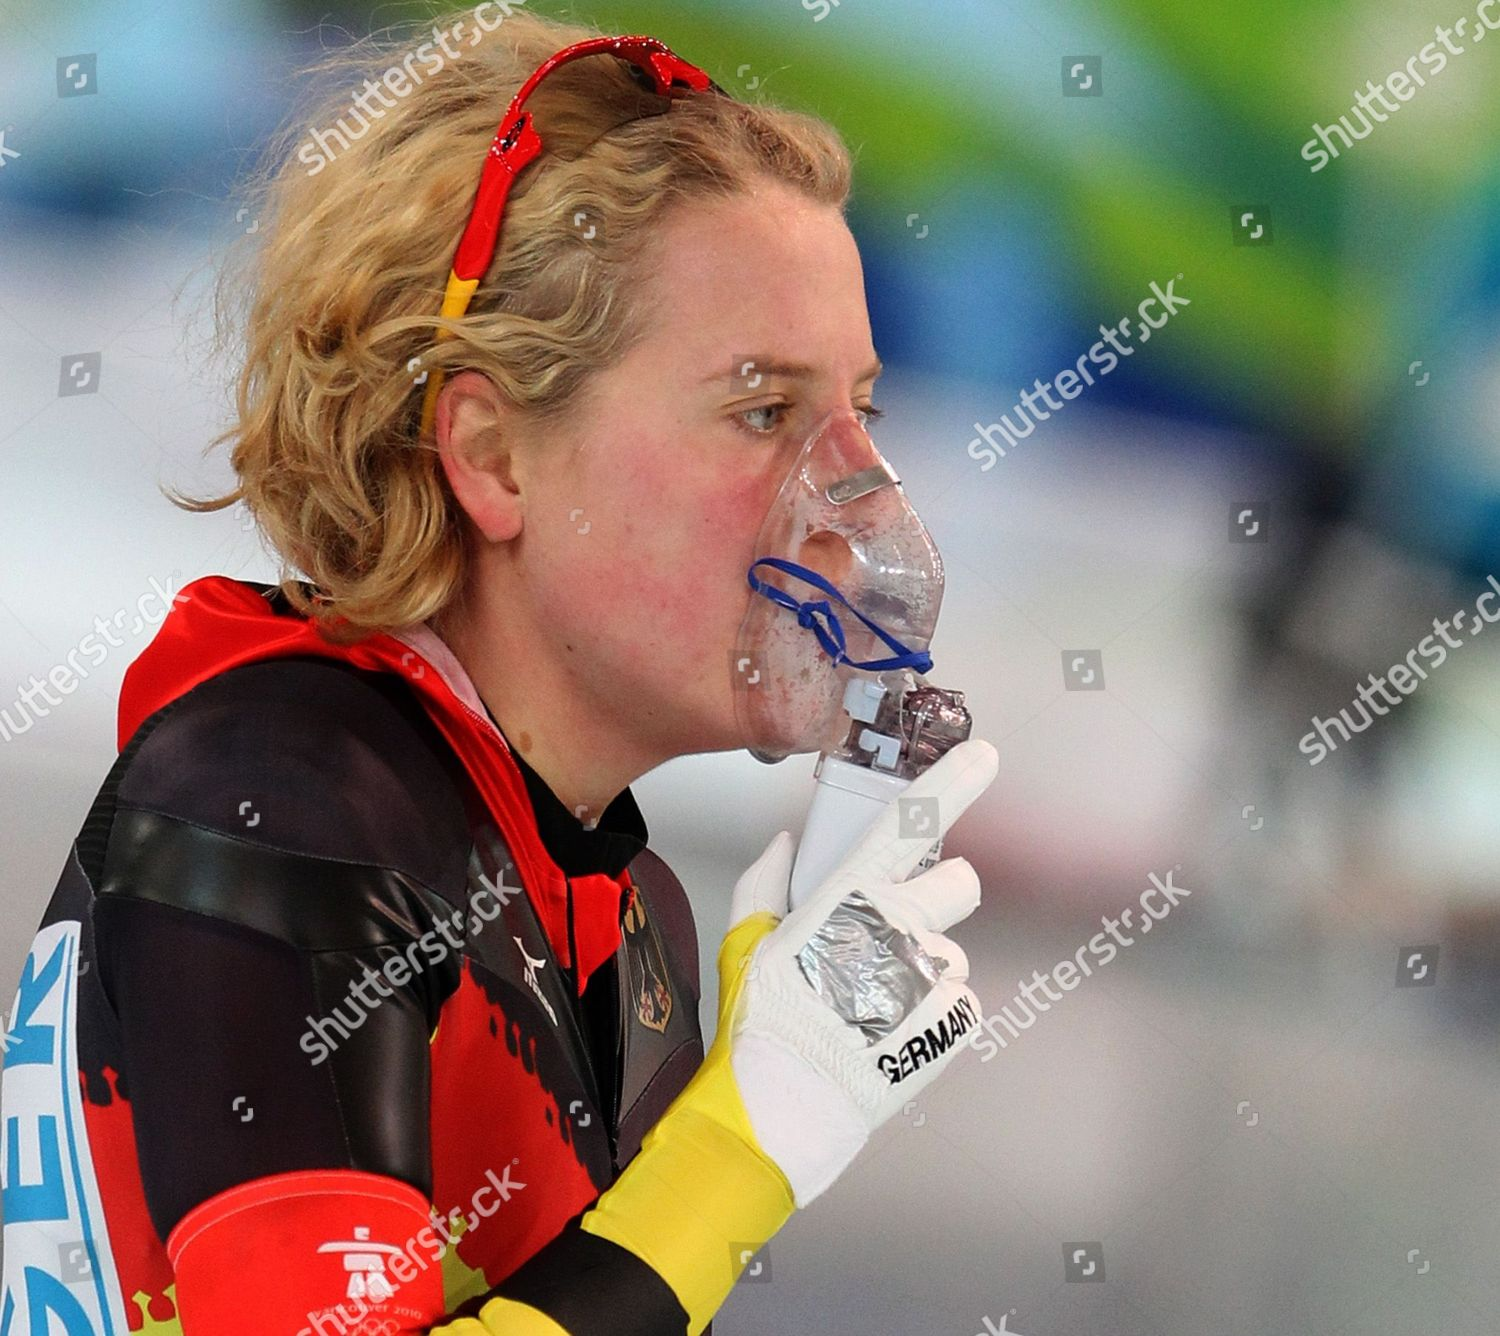 Katrin Mattscherodt Germany Uses Inhaler After Speed